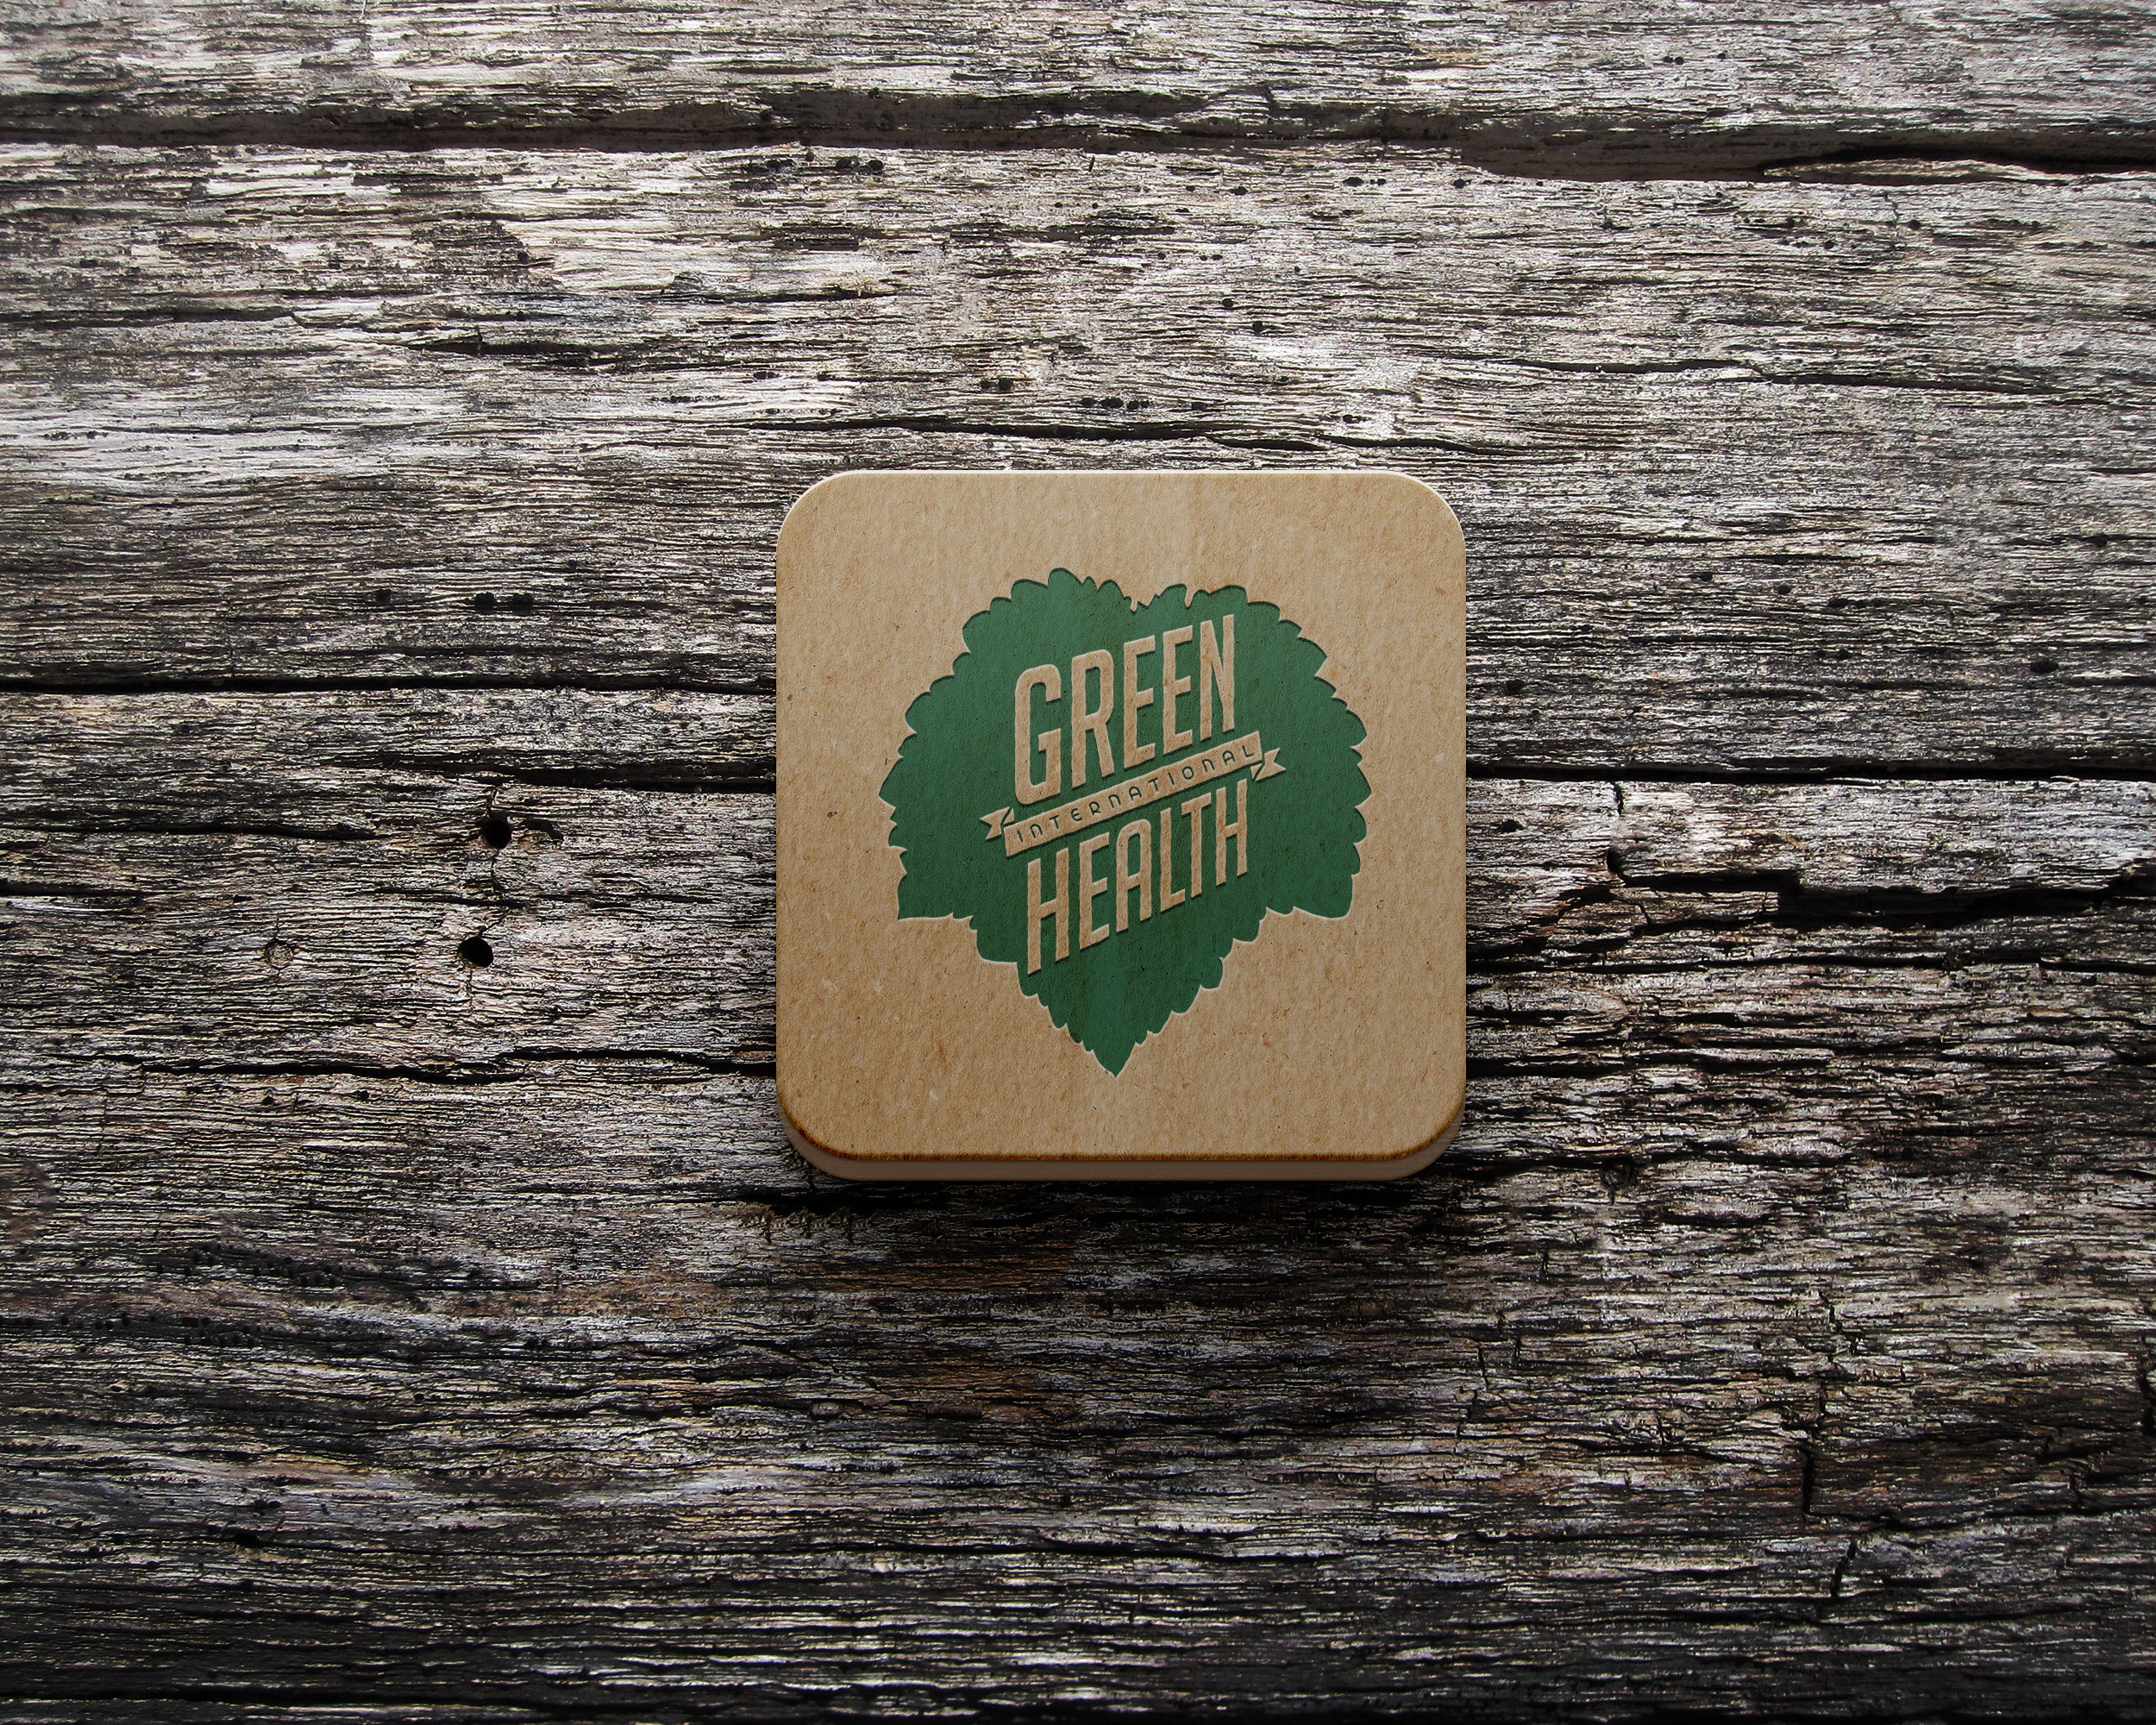 Green Health International logo design and print set